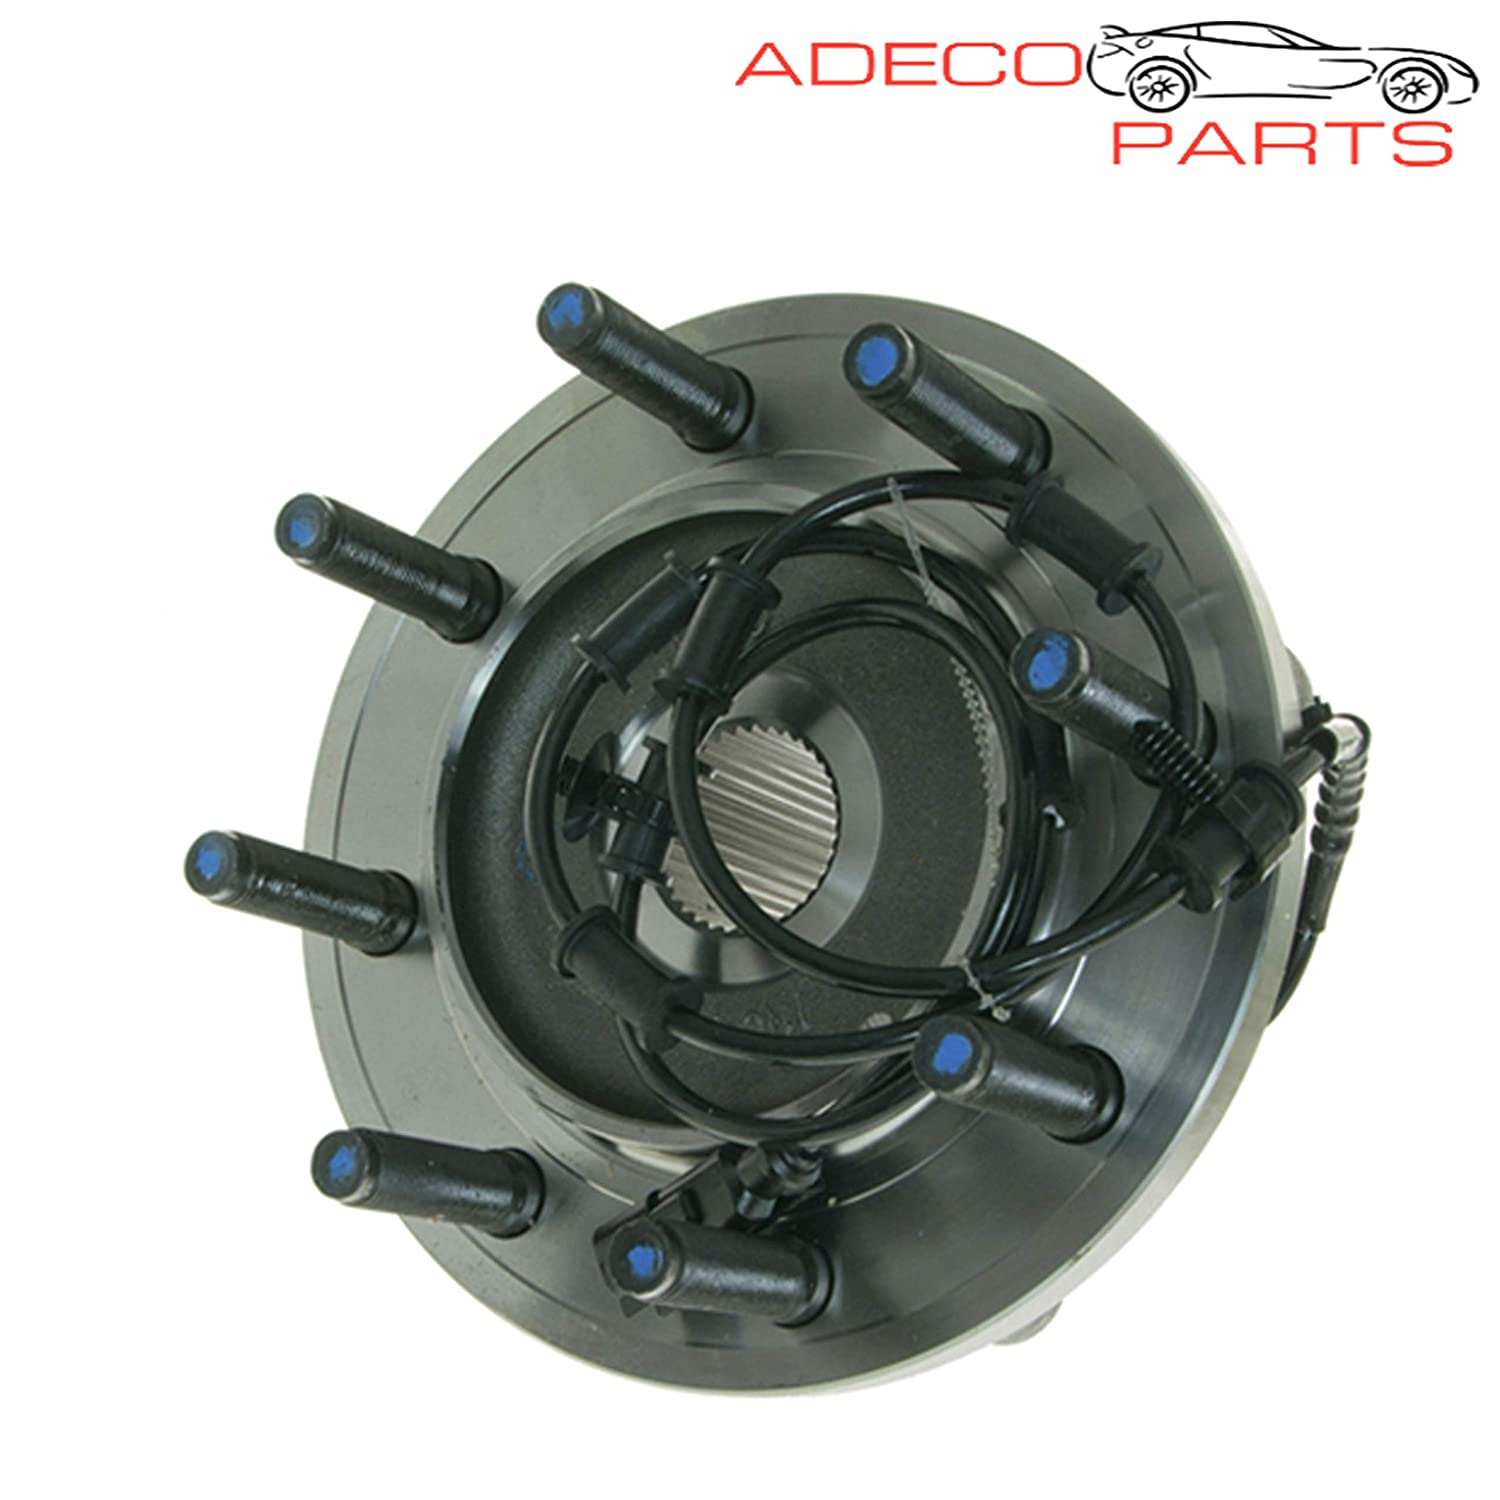 AdecoAutoParts/© Two 515122 Front Wheel Bearing and Hub Assembly for 2009 2010 2011 Dodge Ram 2500 3500 4WD 8 Lug BR930546 1411-424852 WH515122